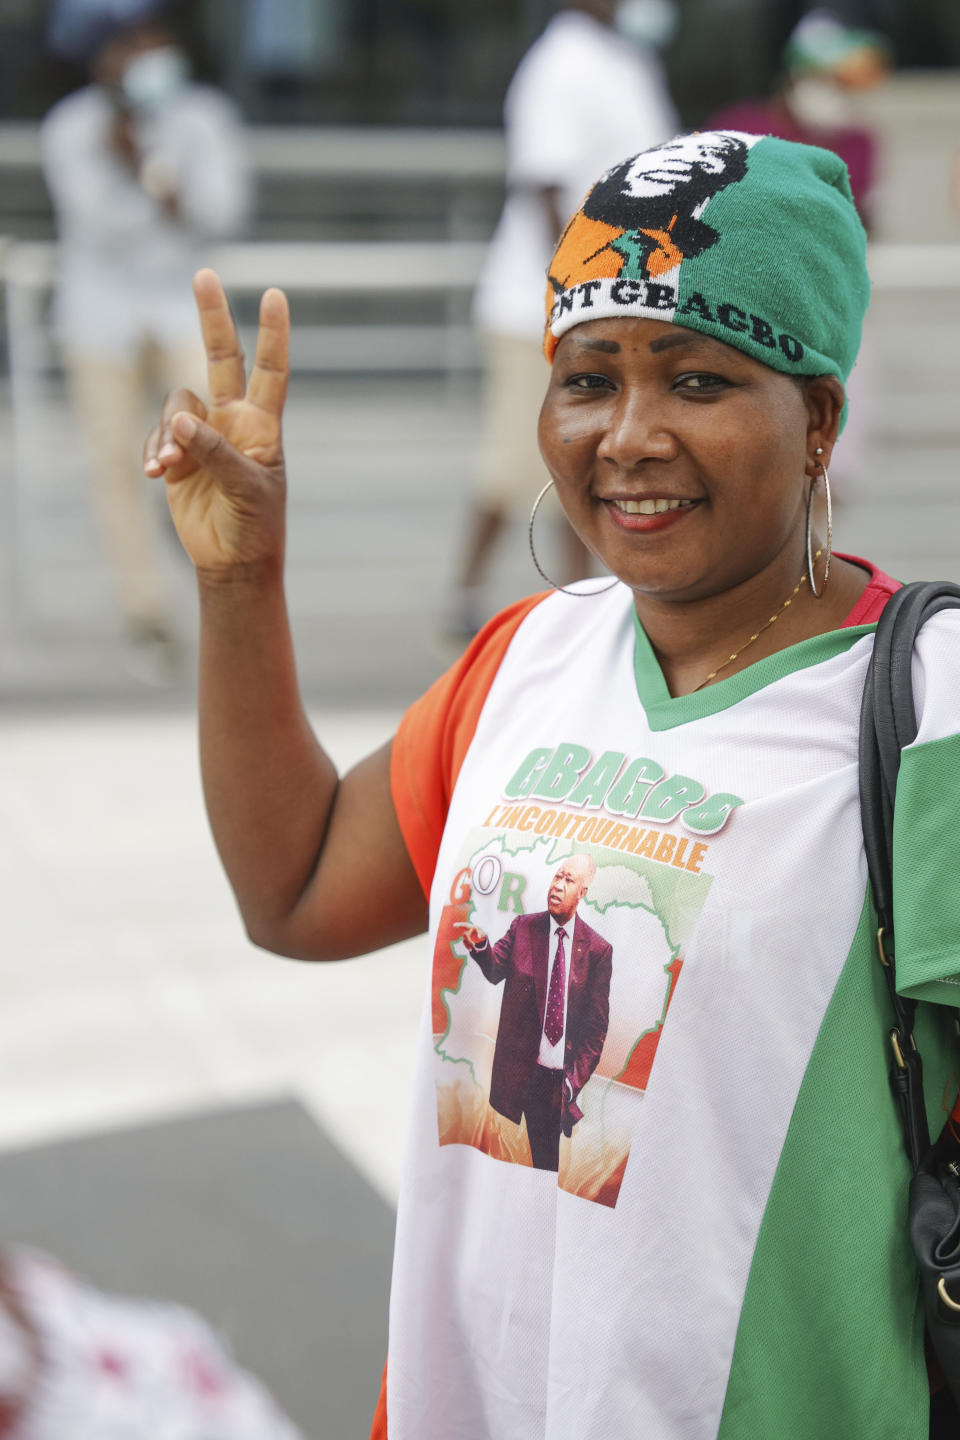 A supporter of former Ivory Coast President Laurent Gbagbo gestures as she gathers with others at the Brussels international airport in Brussels, Thursday, June 17, 2021. The former Ivory Coast president Laurent Gbagbo is returning home to Ivory Coast for the first time in nearly a decade, after his acquittal on war crimes charges was upheld at the International Criminal Court earlier this year. (AP Photo/Olivier Matthys)